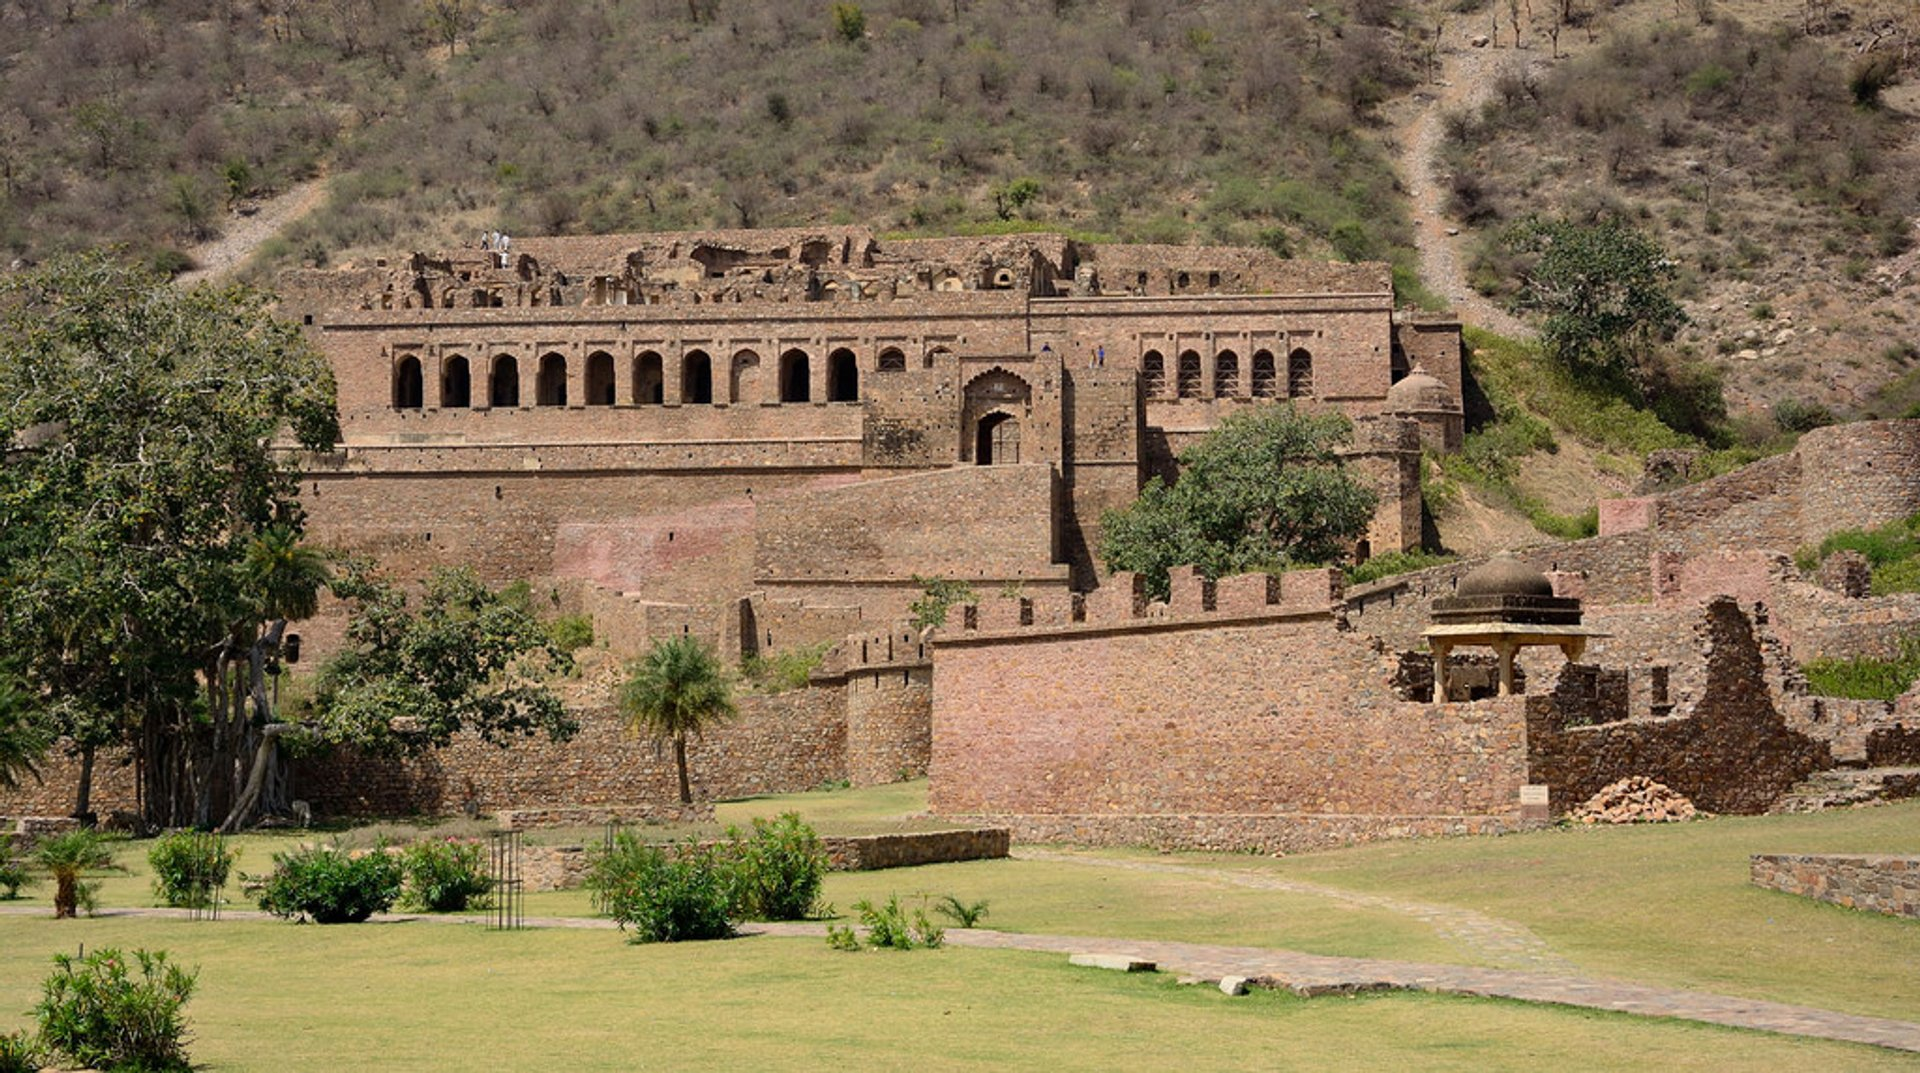 Bhangarh Fort in India - Best Season 2020